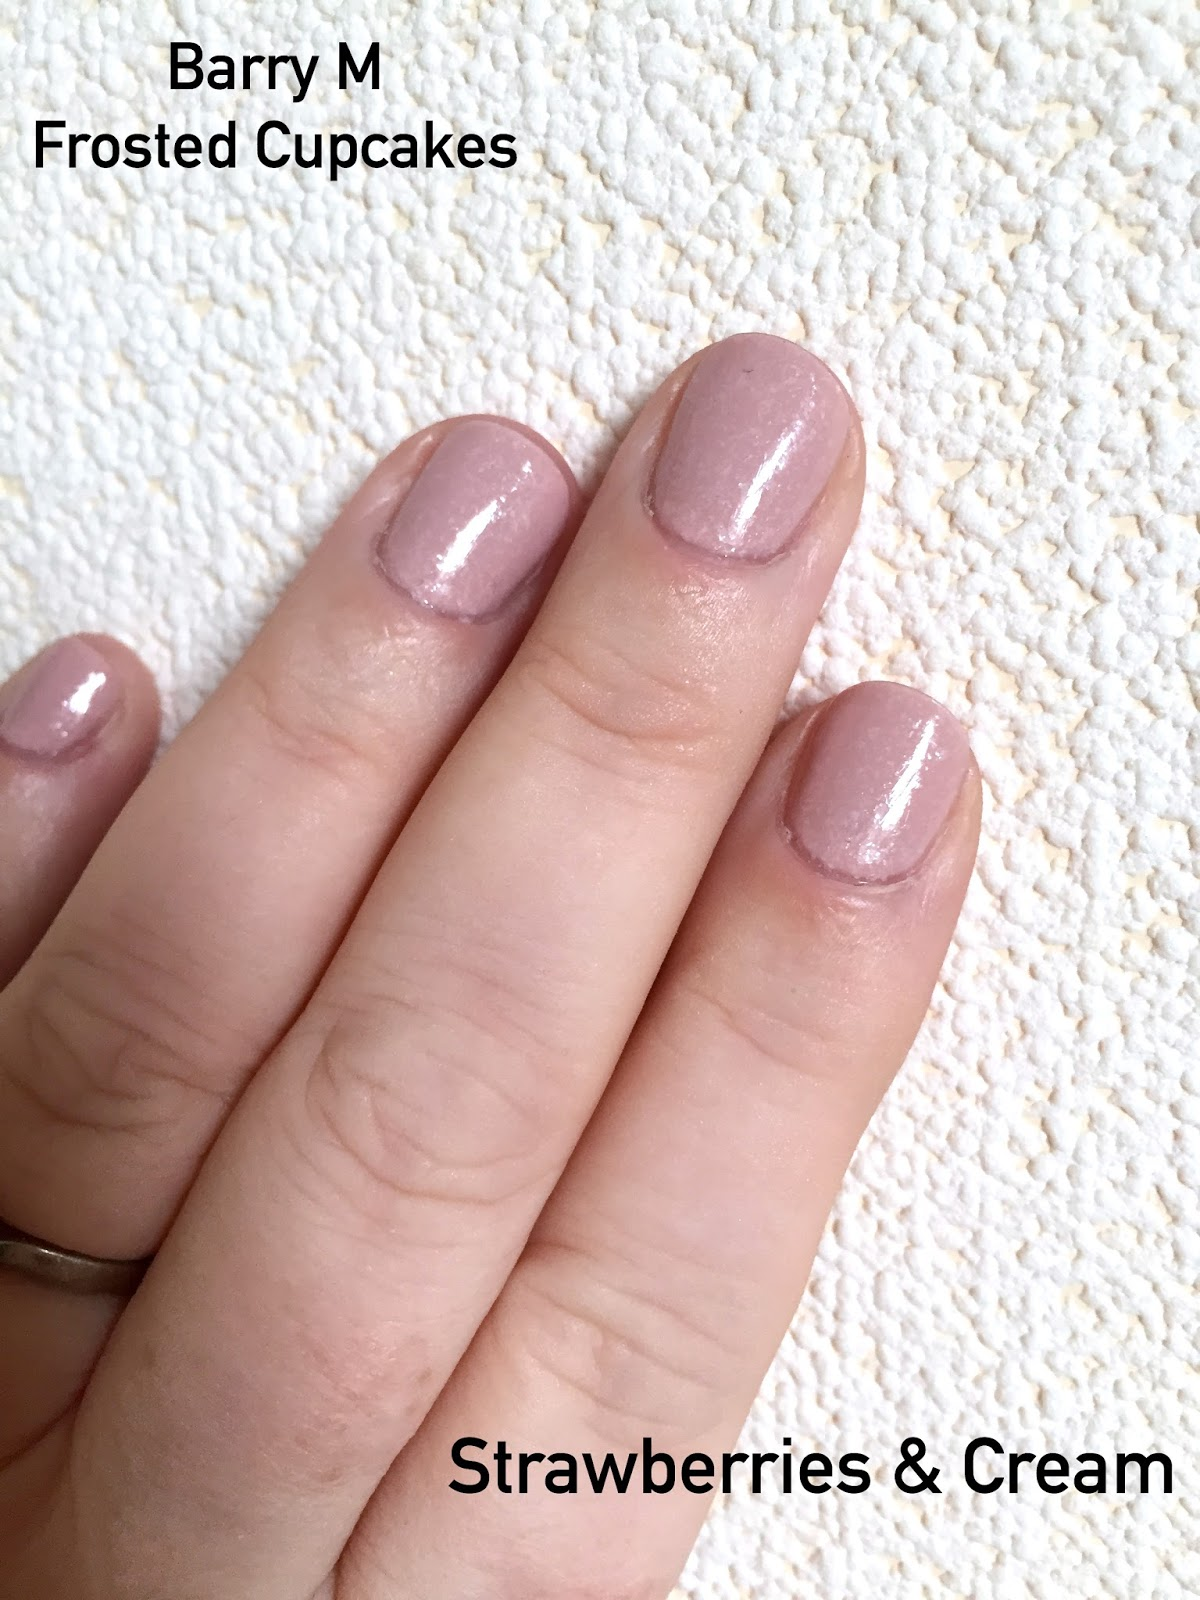 Barry M Frosted Cupcake Polishes - NOTD And Review - Mammaful Zo ...